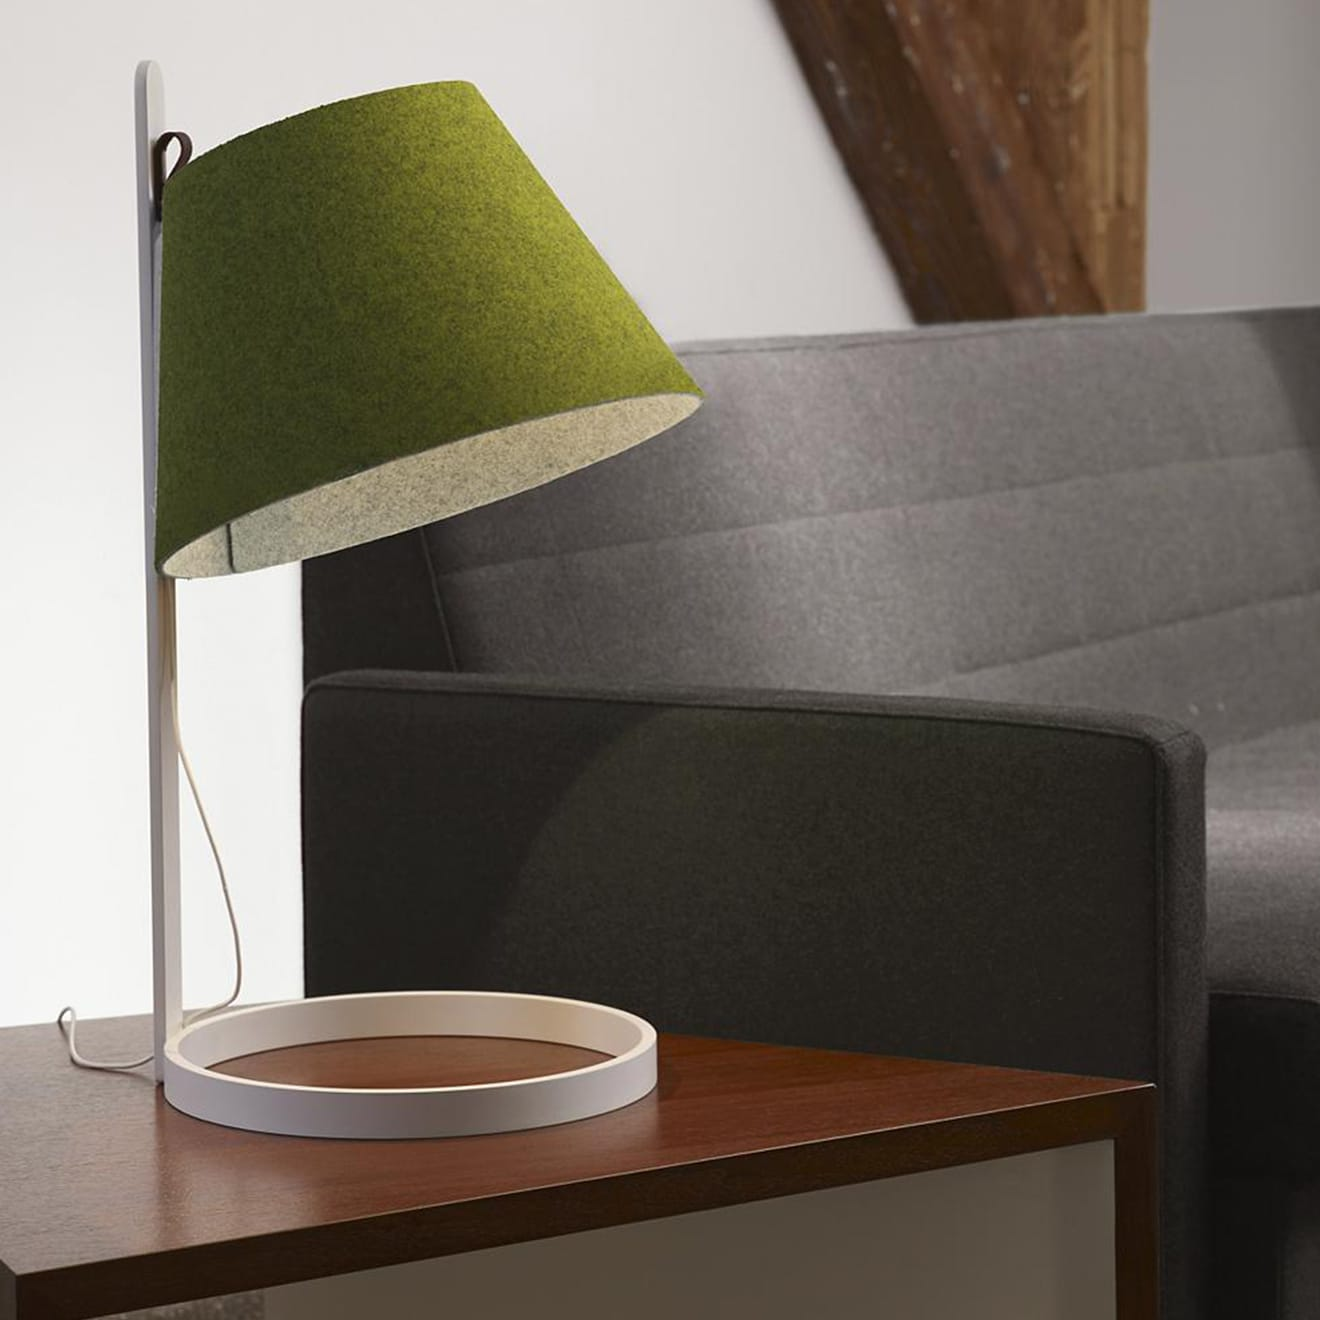 Lana LED Table Lamp by Pablo Designs